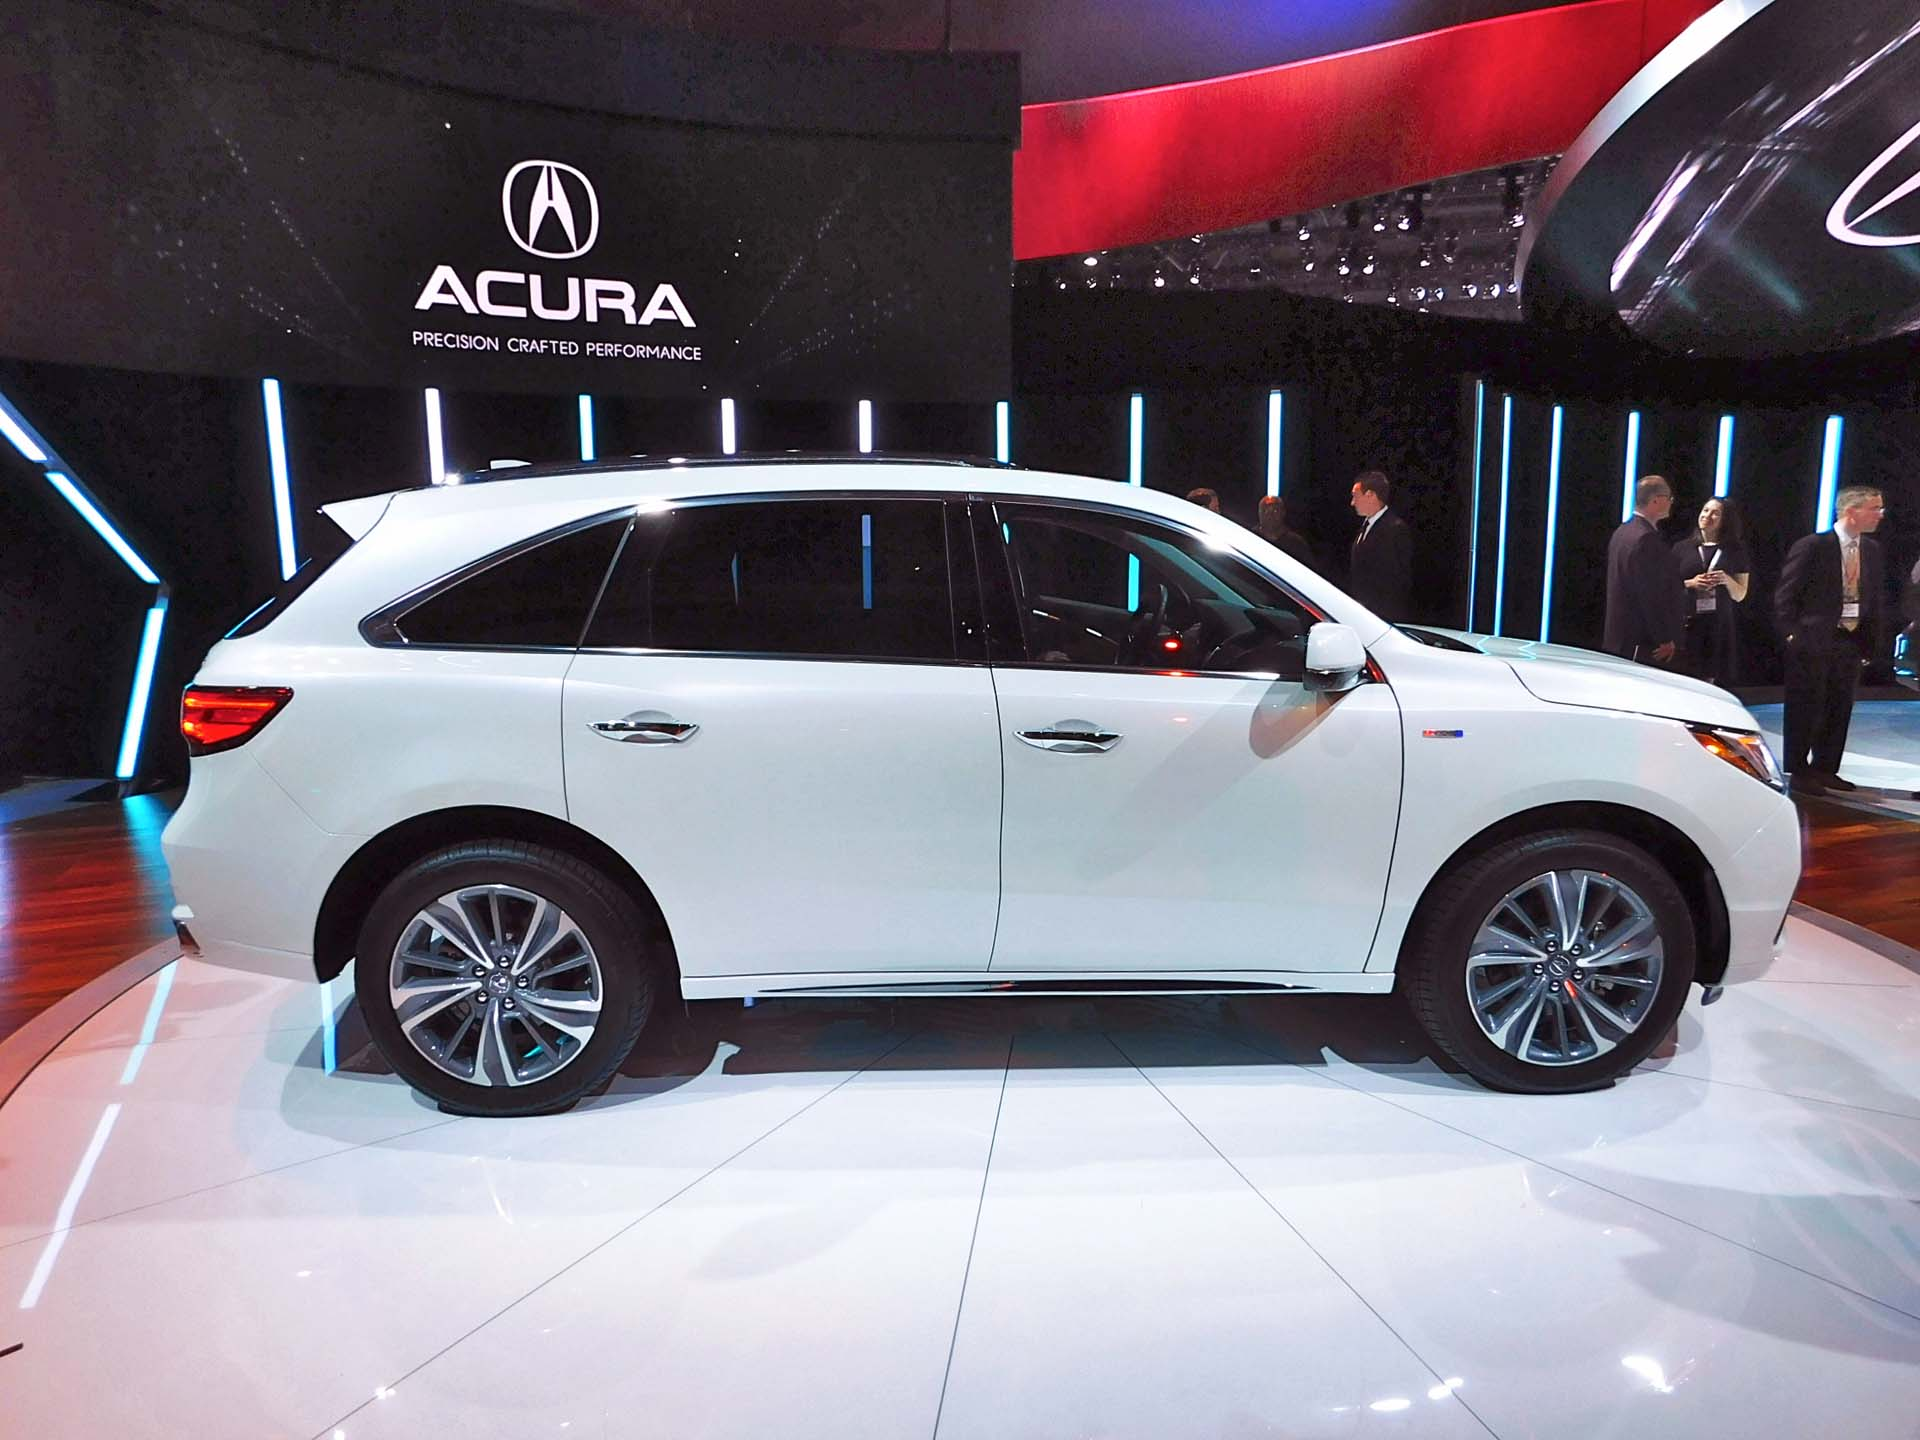 2017 acura mdx. Black Bedroom Furniture Sets. Home Design Ideas